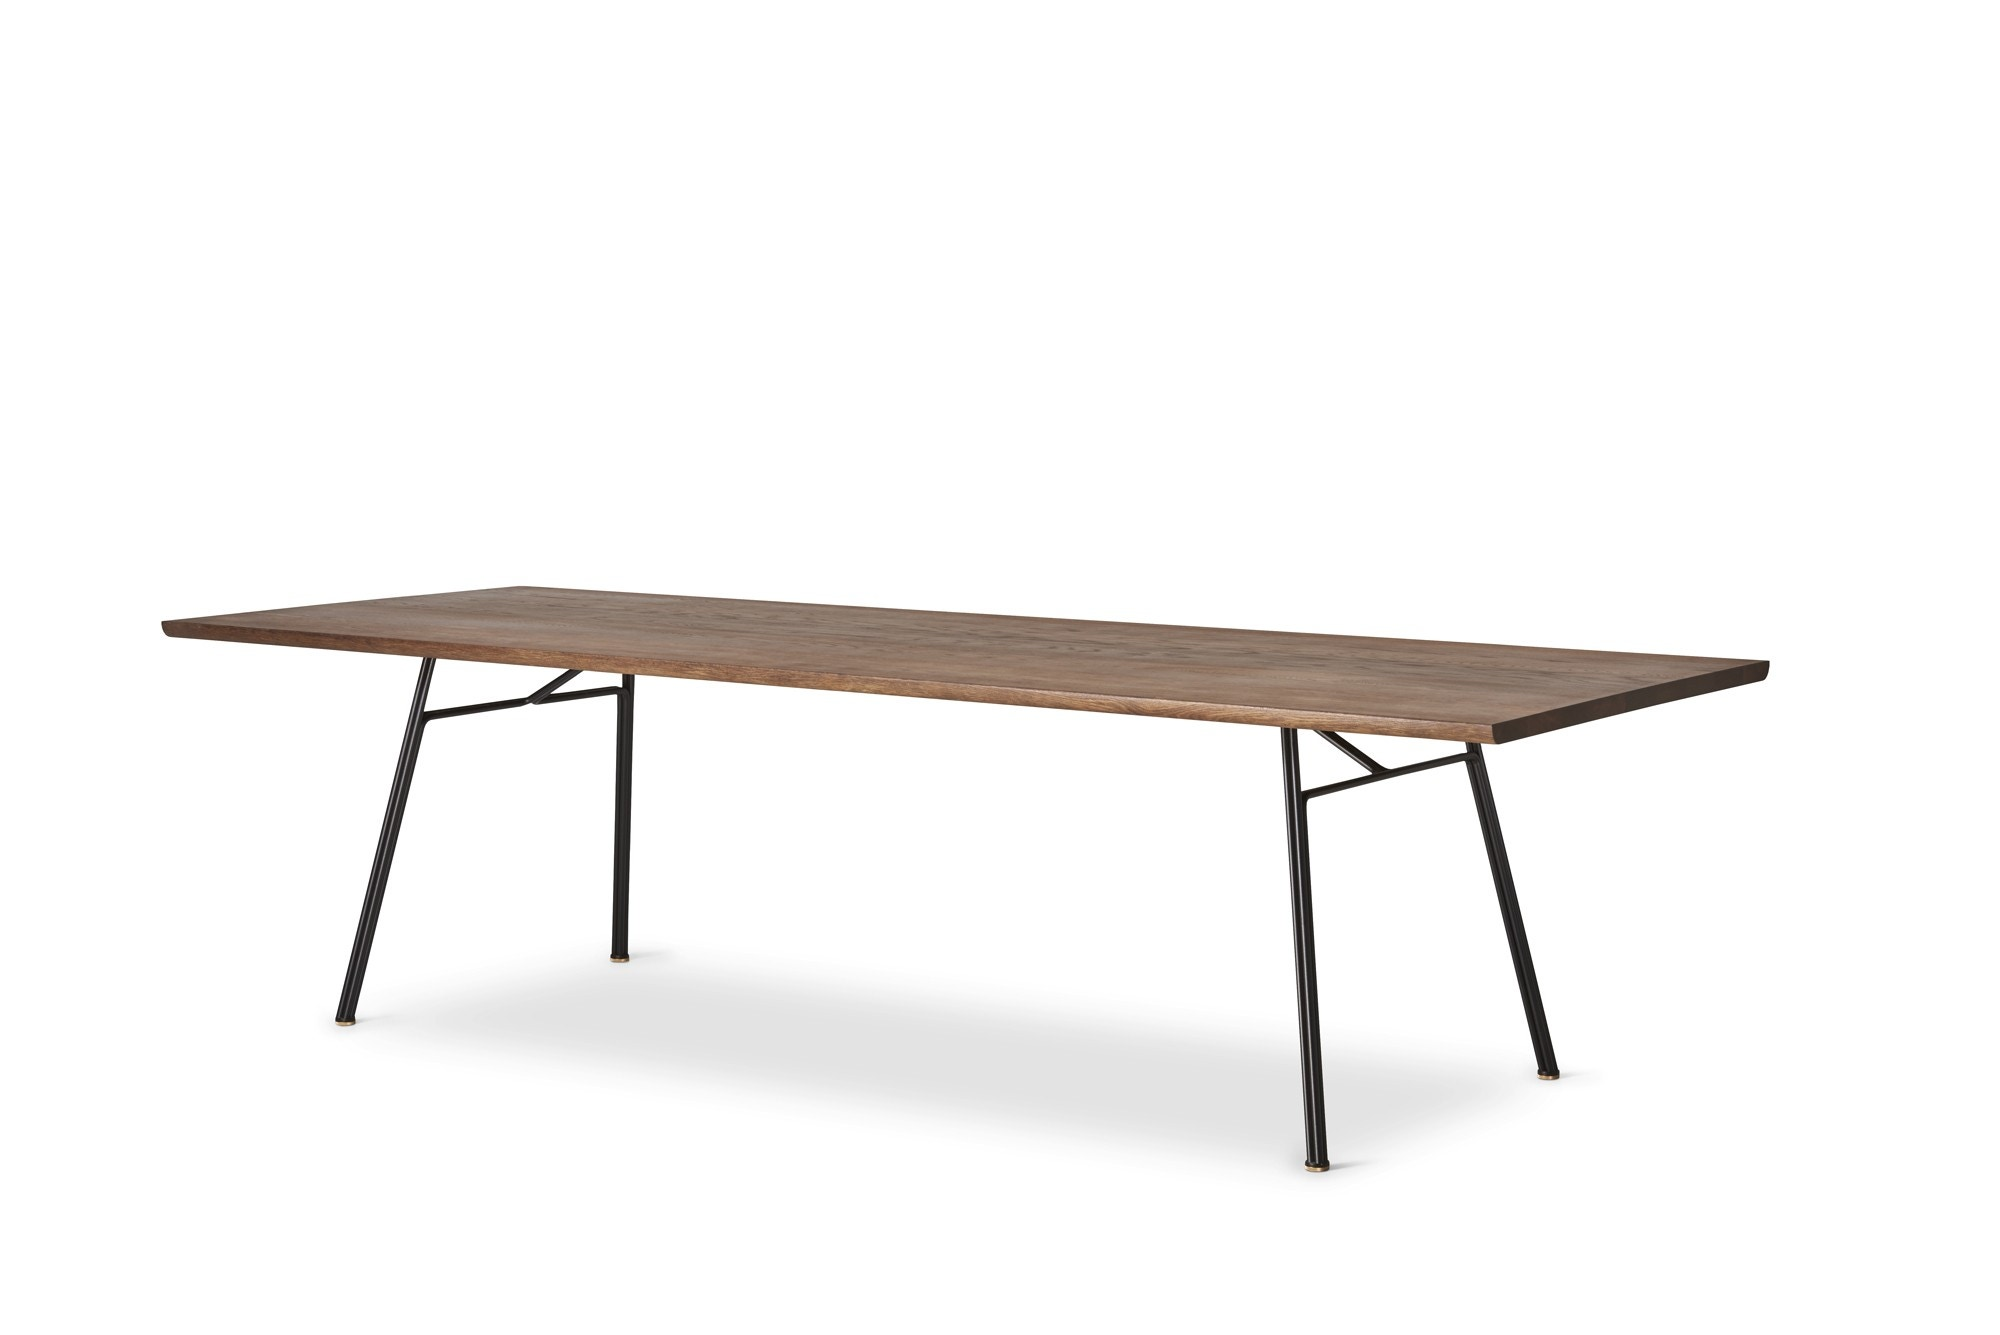 dk3 Corduroy Rectangular Table